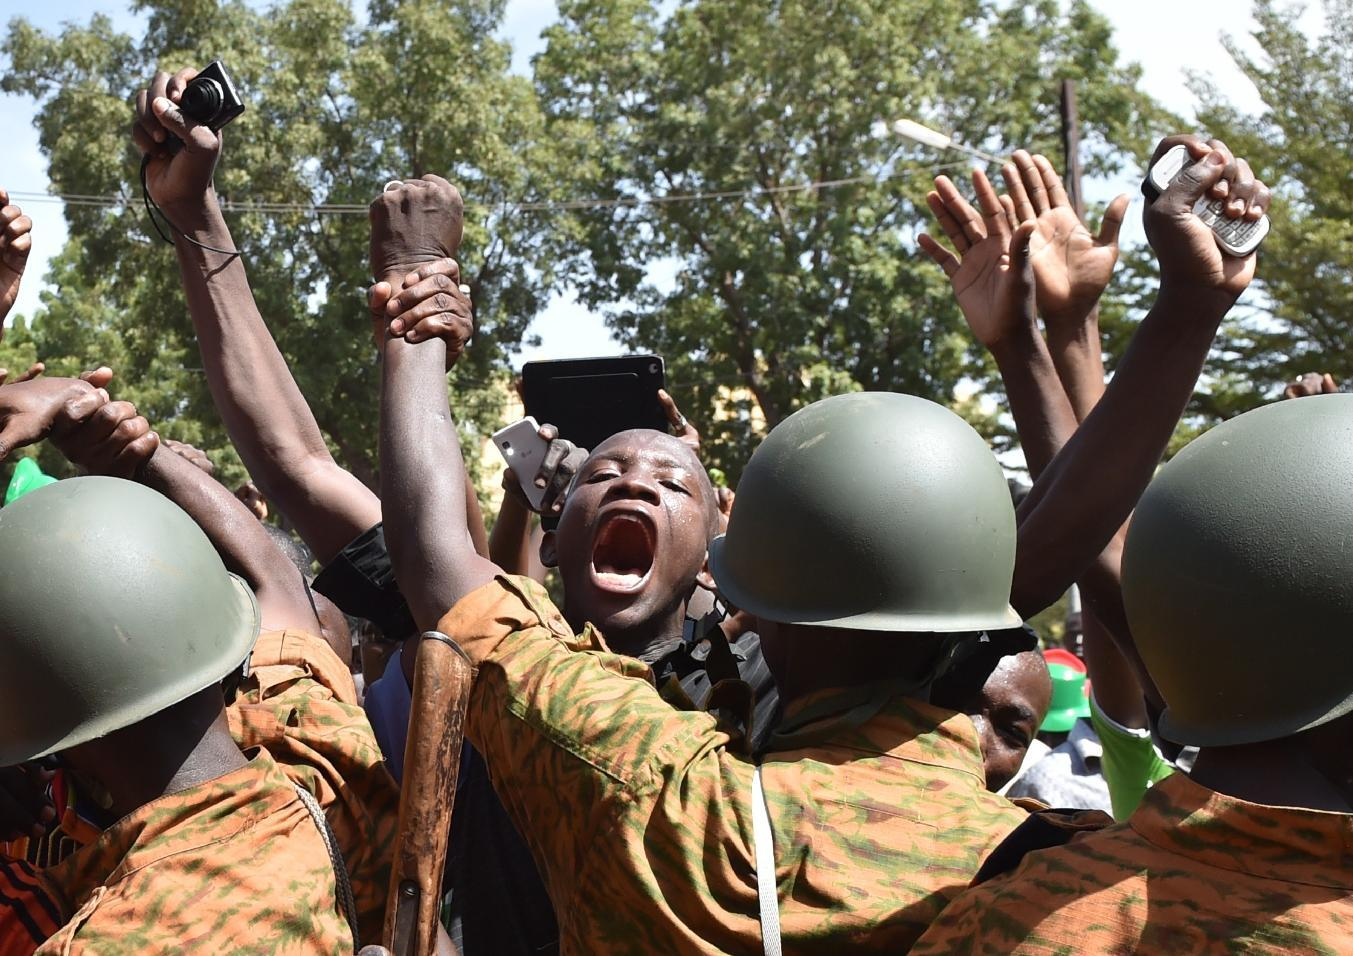 A crowd gathers on October 31, 2014 in front of army headquarters in Ouagadougou, demanding that the army take over following the resignation of the president of Burkina Faso (AFP Photo/Issouf Sanogo)